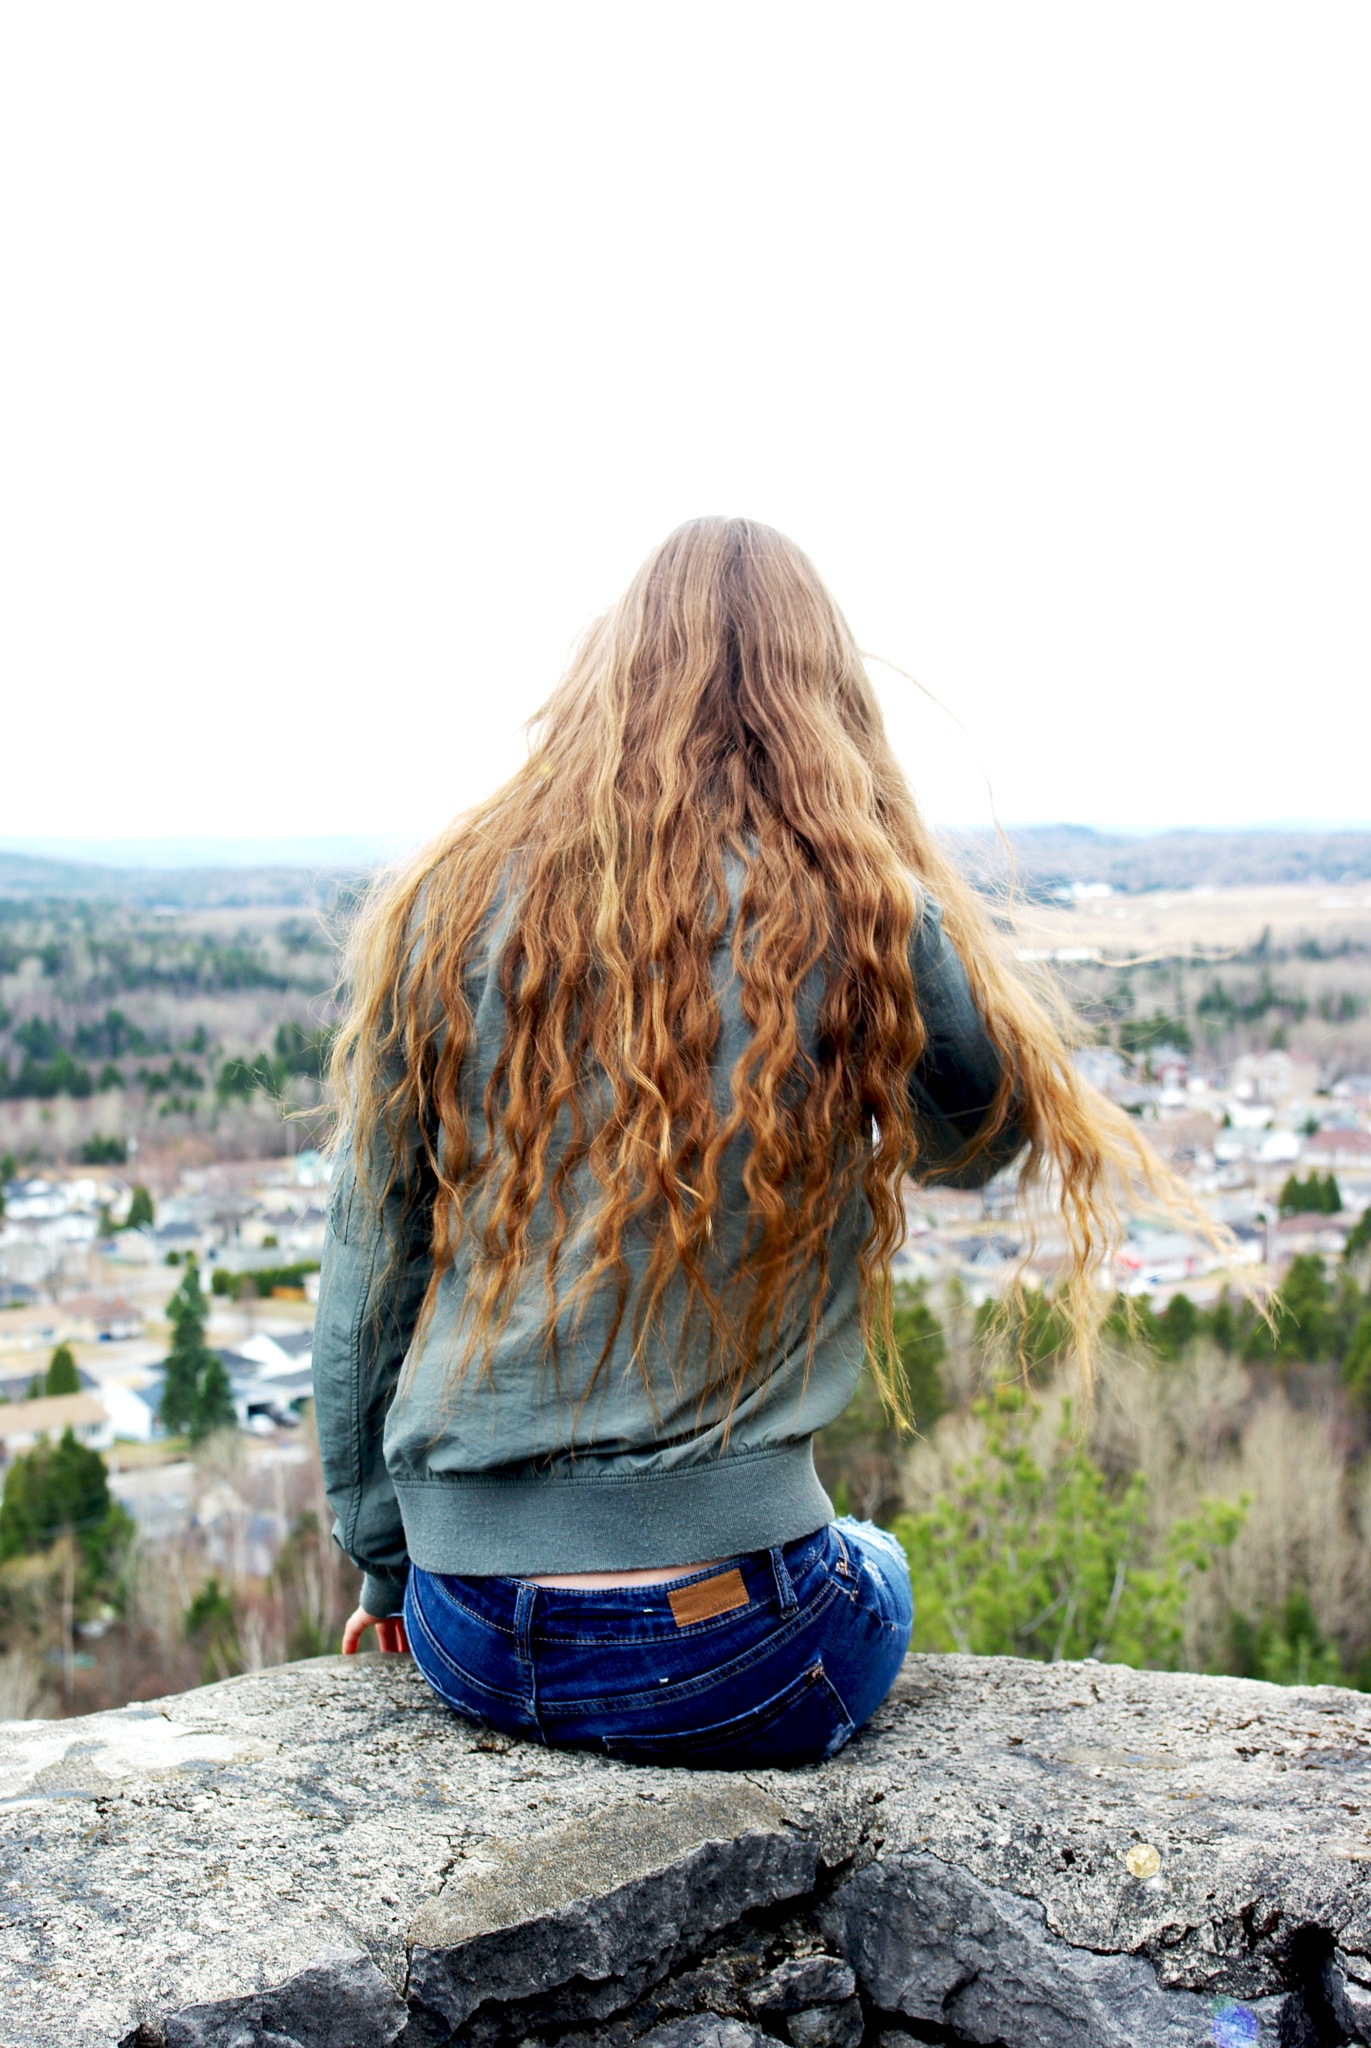 Girl Looking down the cliff. by Sam P.